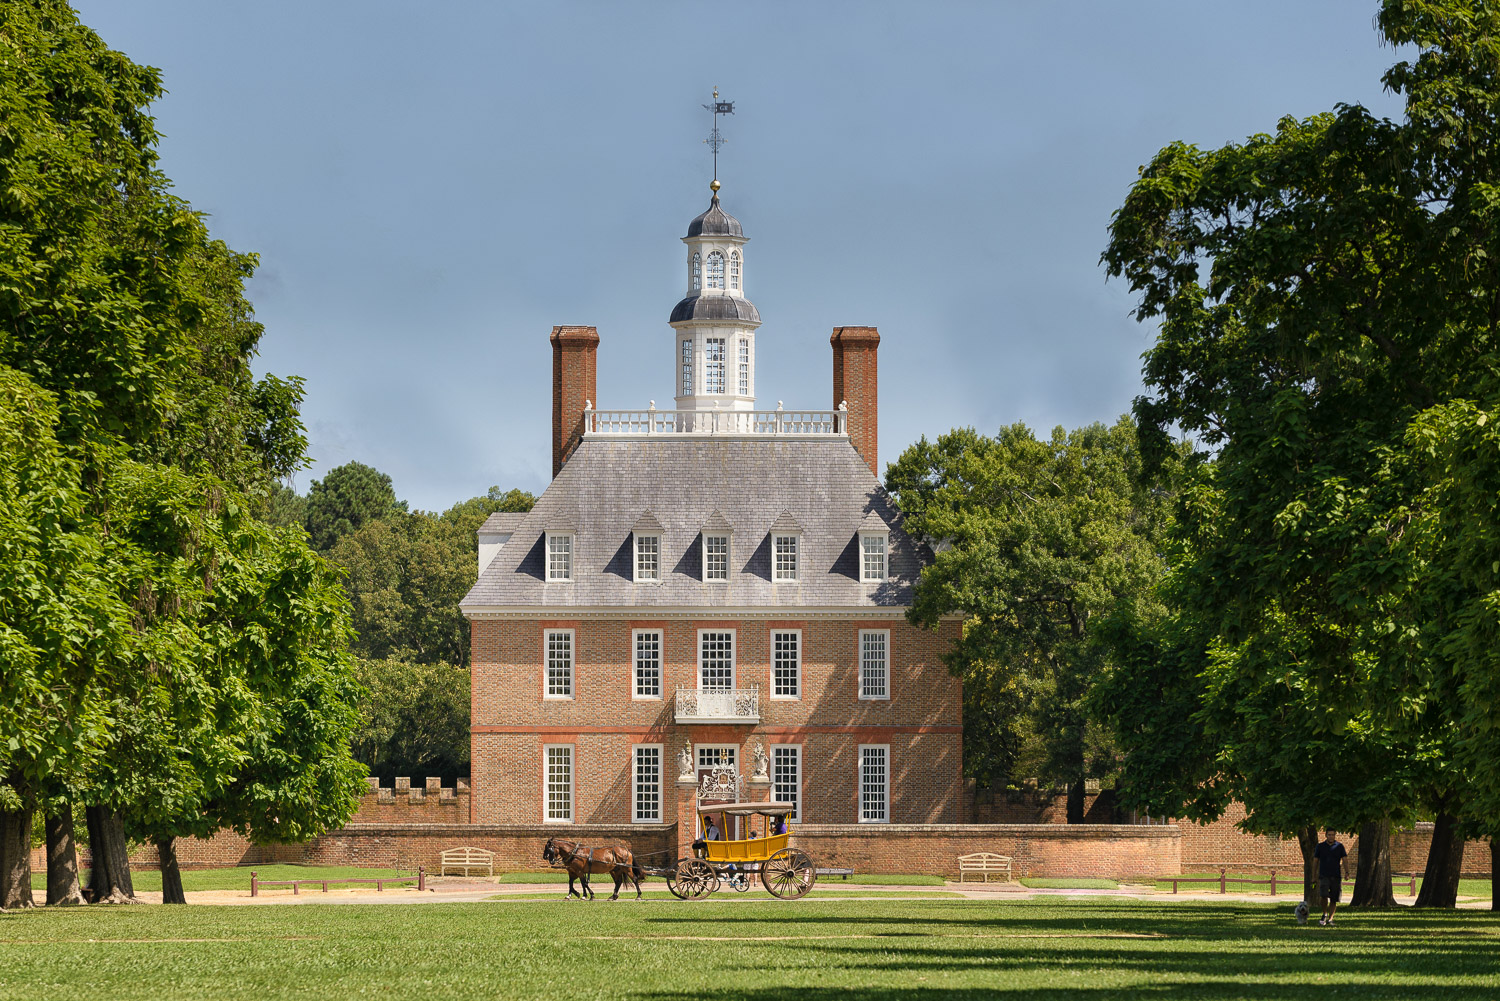 Colonial williamsburg summer - click here